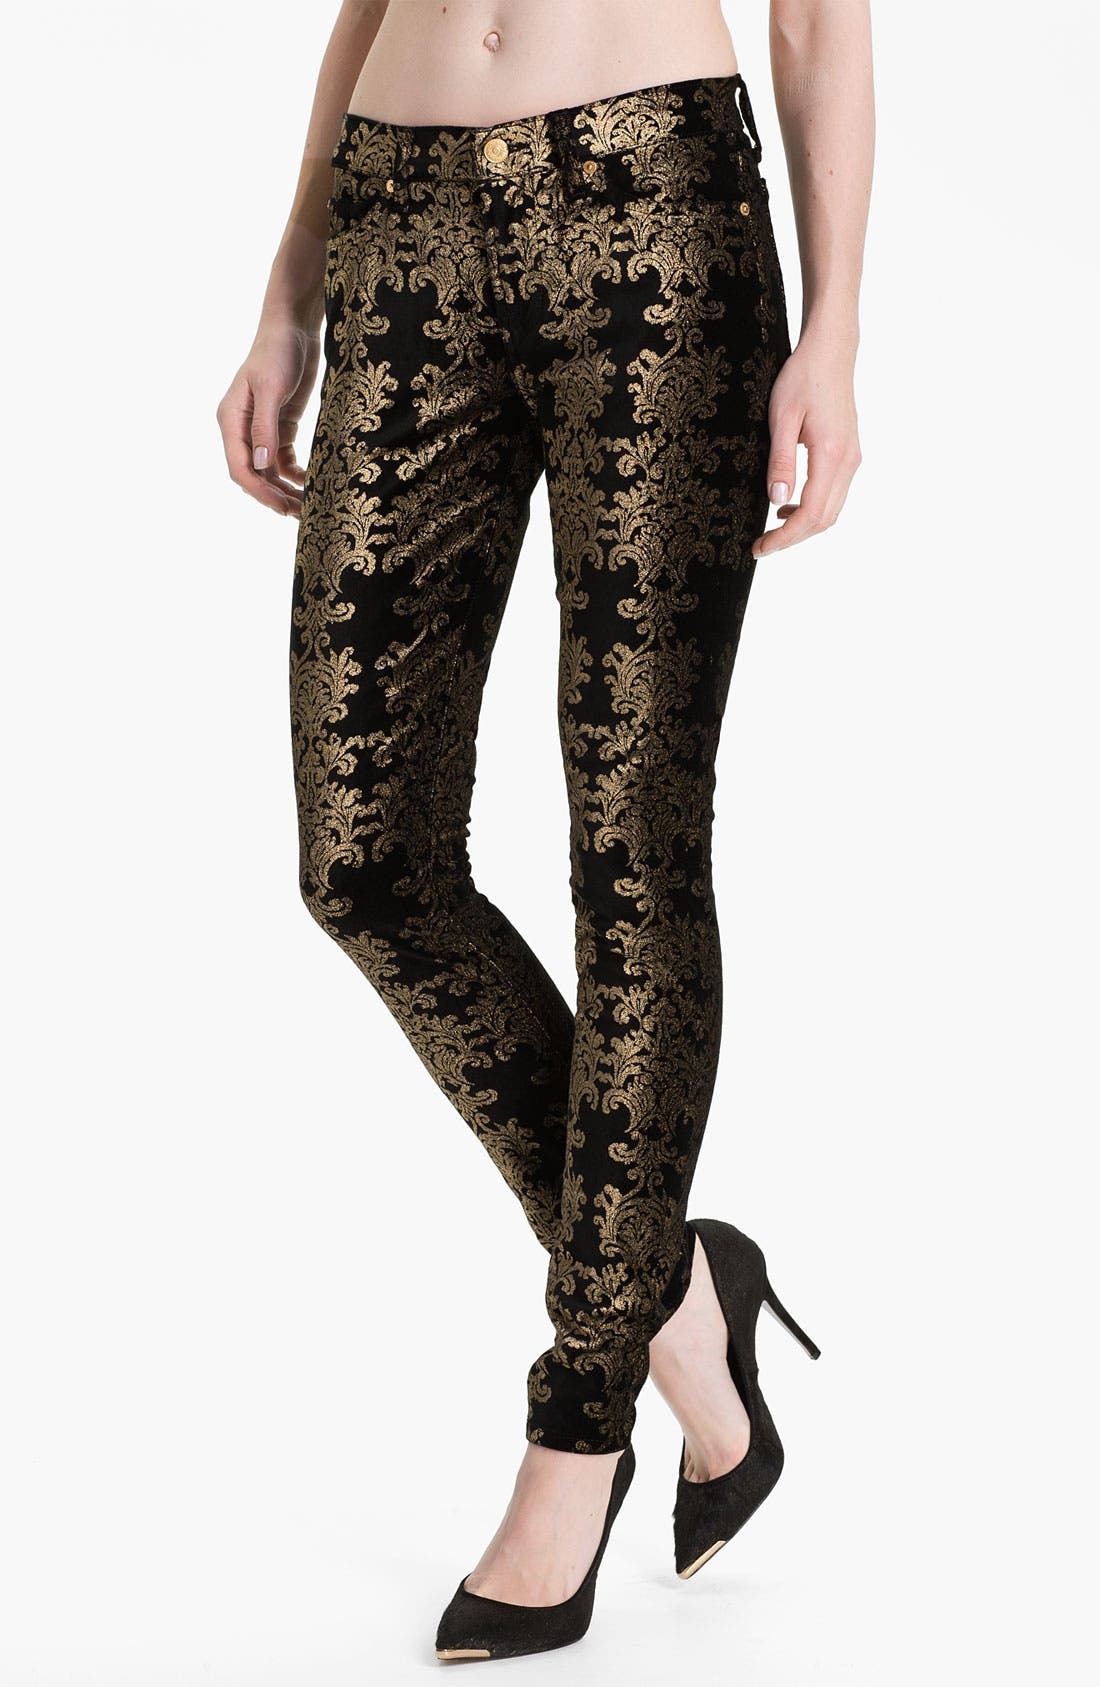 Main Image - 7 For All Mankind® 'The Skinny' Foil Print Jeans (Black/Gold Foil)